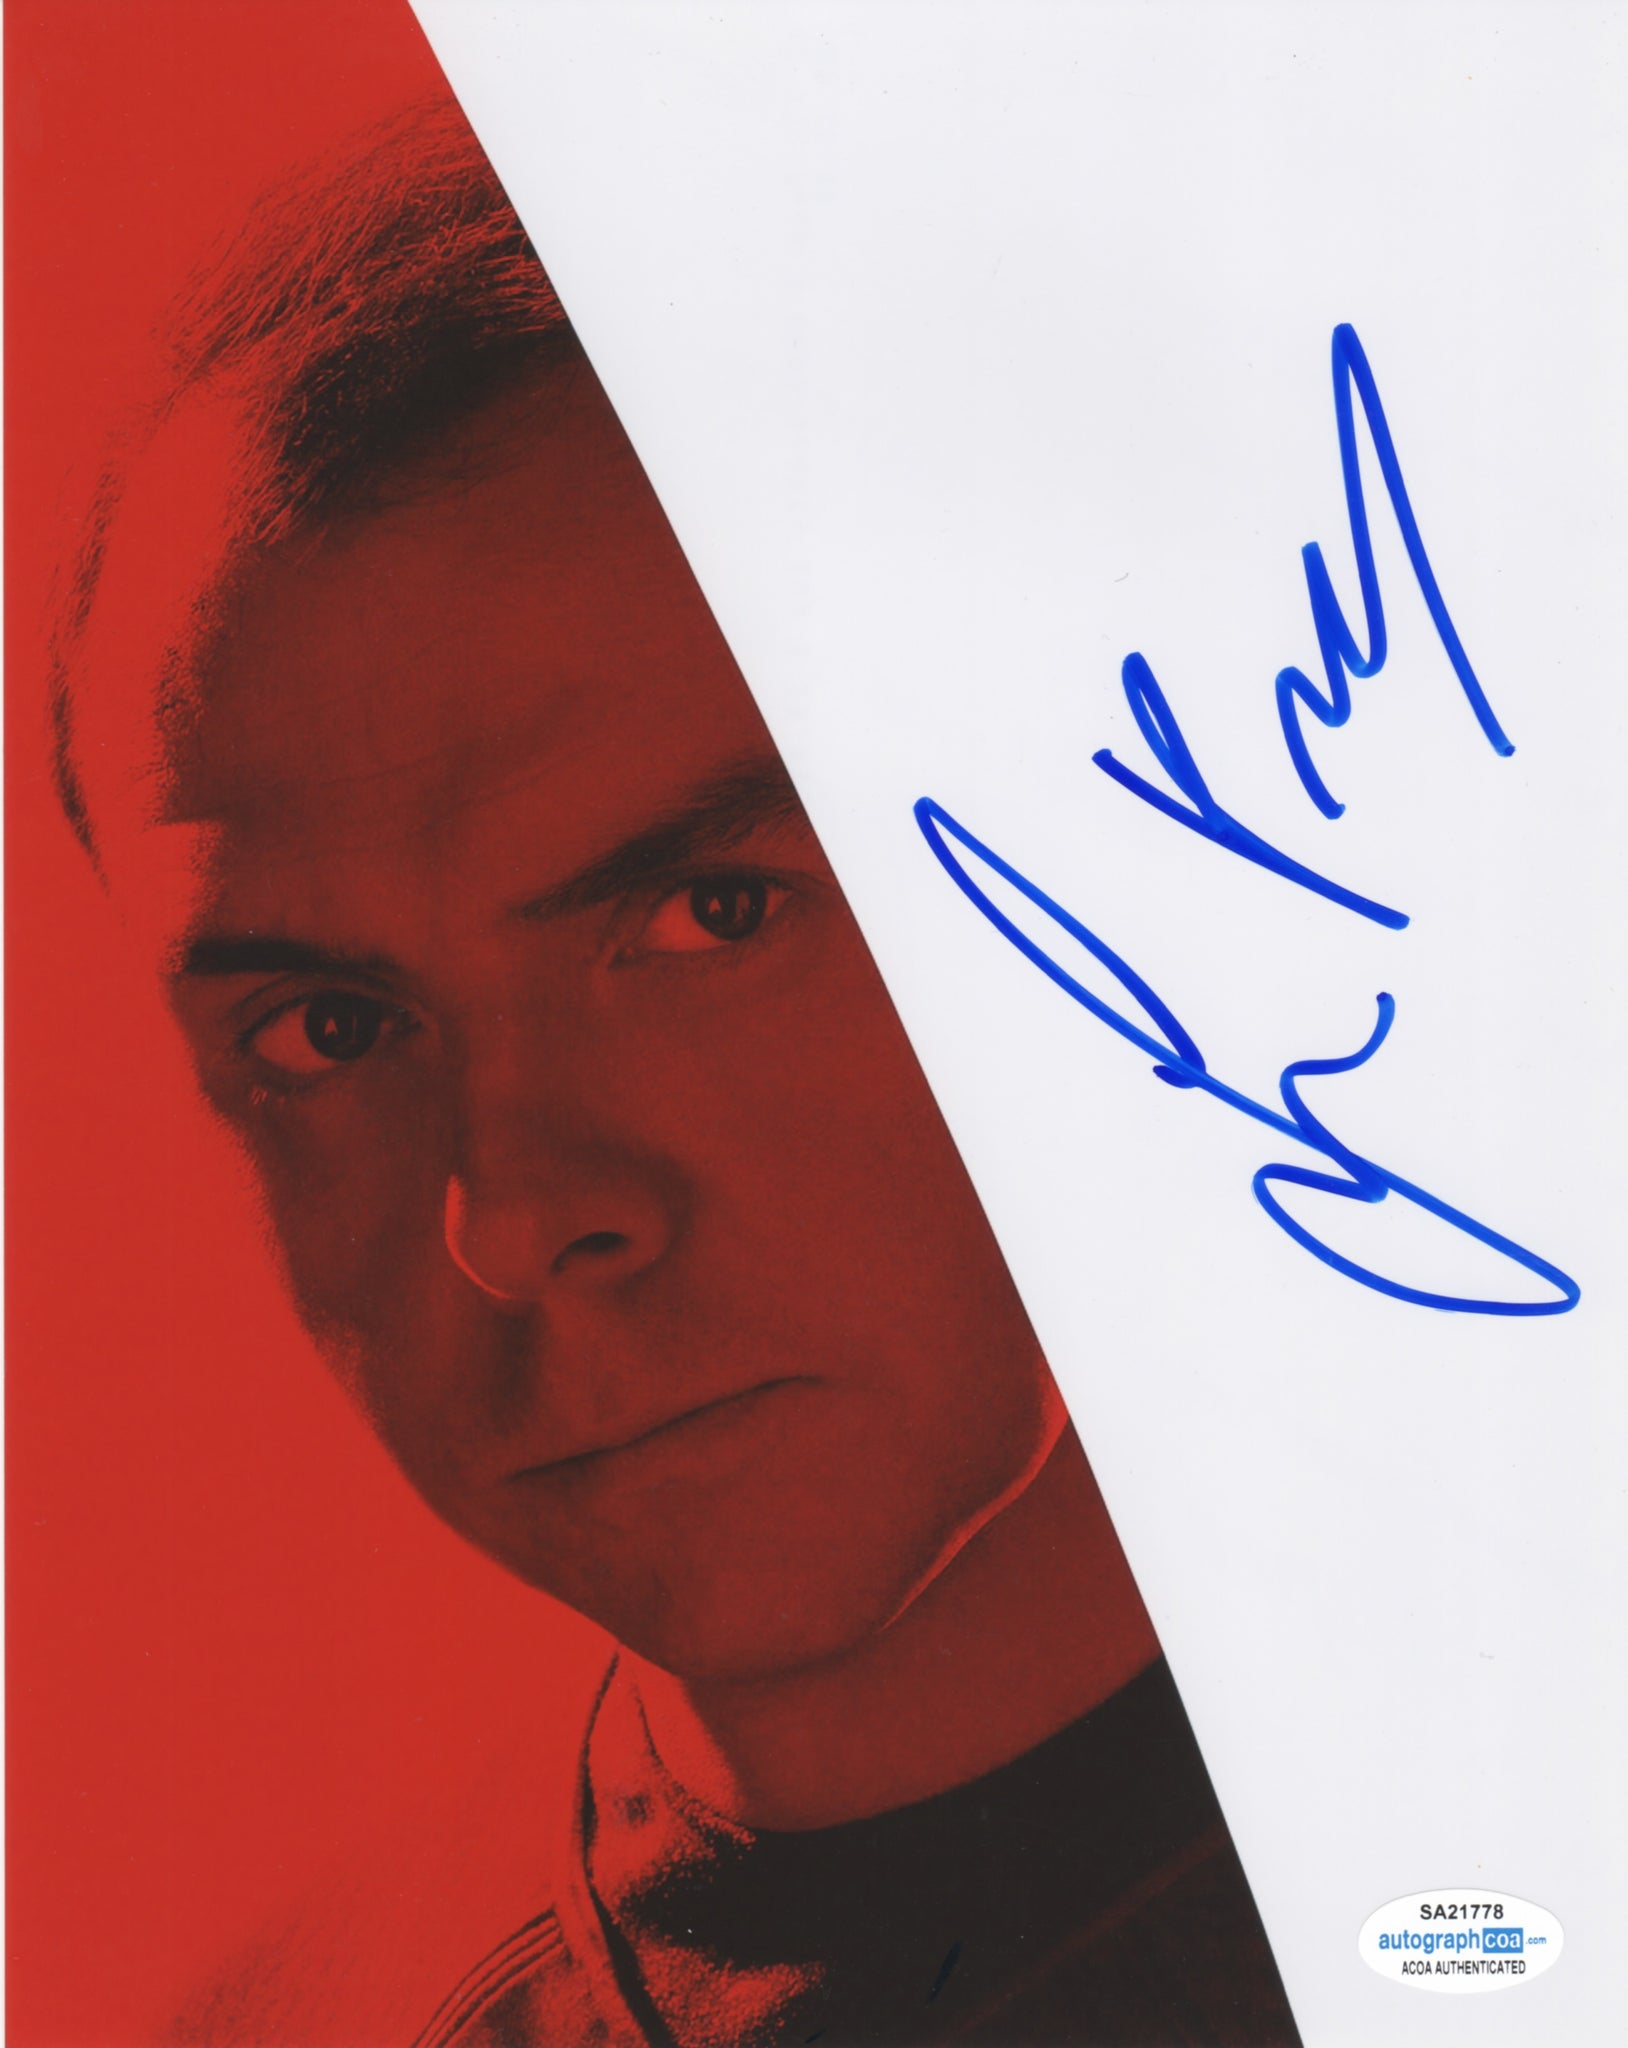 Simon Pegg Star Trek Signed Autograph 8x10 Photo ACOA #14 - Outlaw Hobbies Authentic Autographs